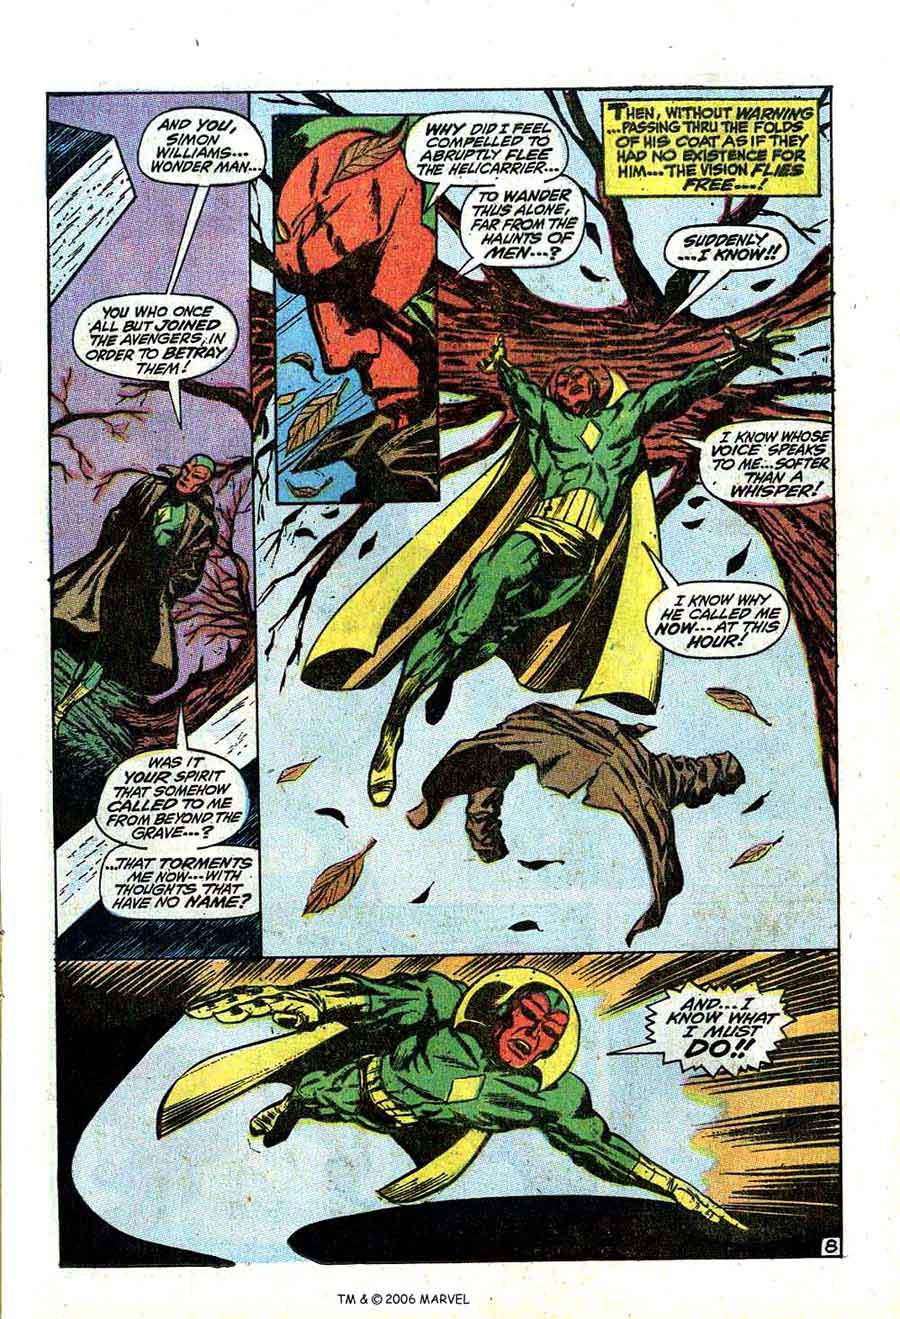 Avengers v1 #66 marvel comic book page art by Barry Windsor Smith